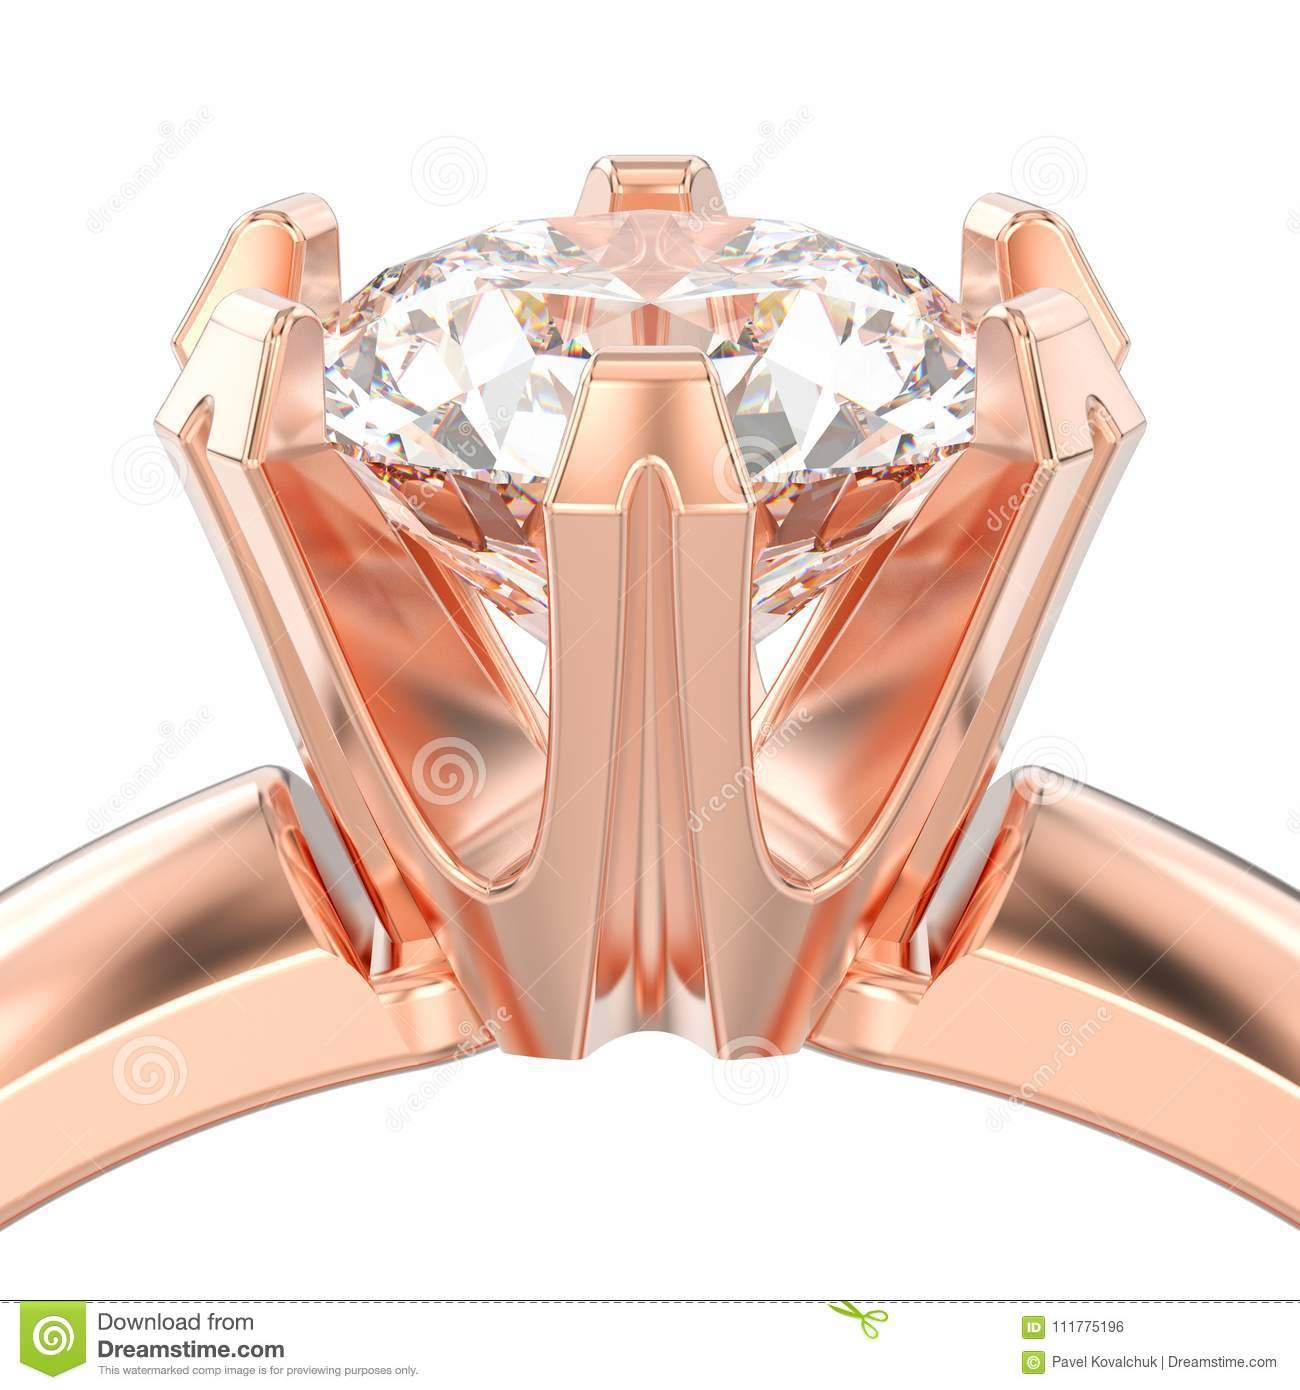 3D illustration isolated close up rose gold solitaire engagement